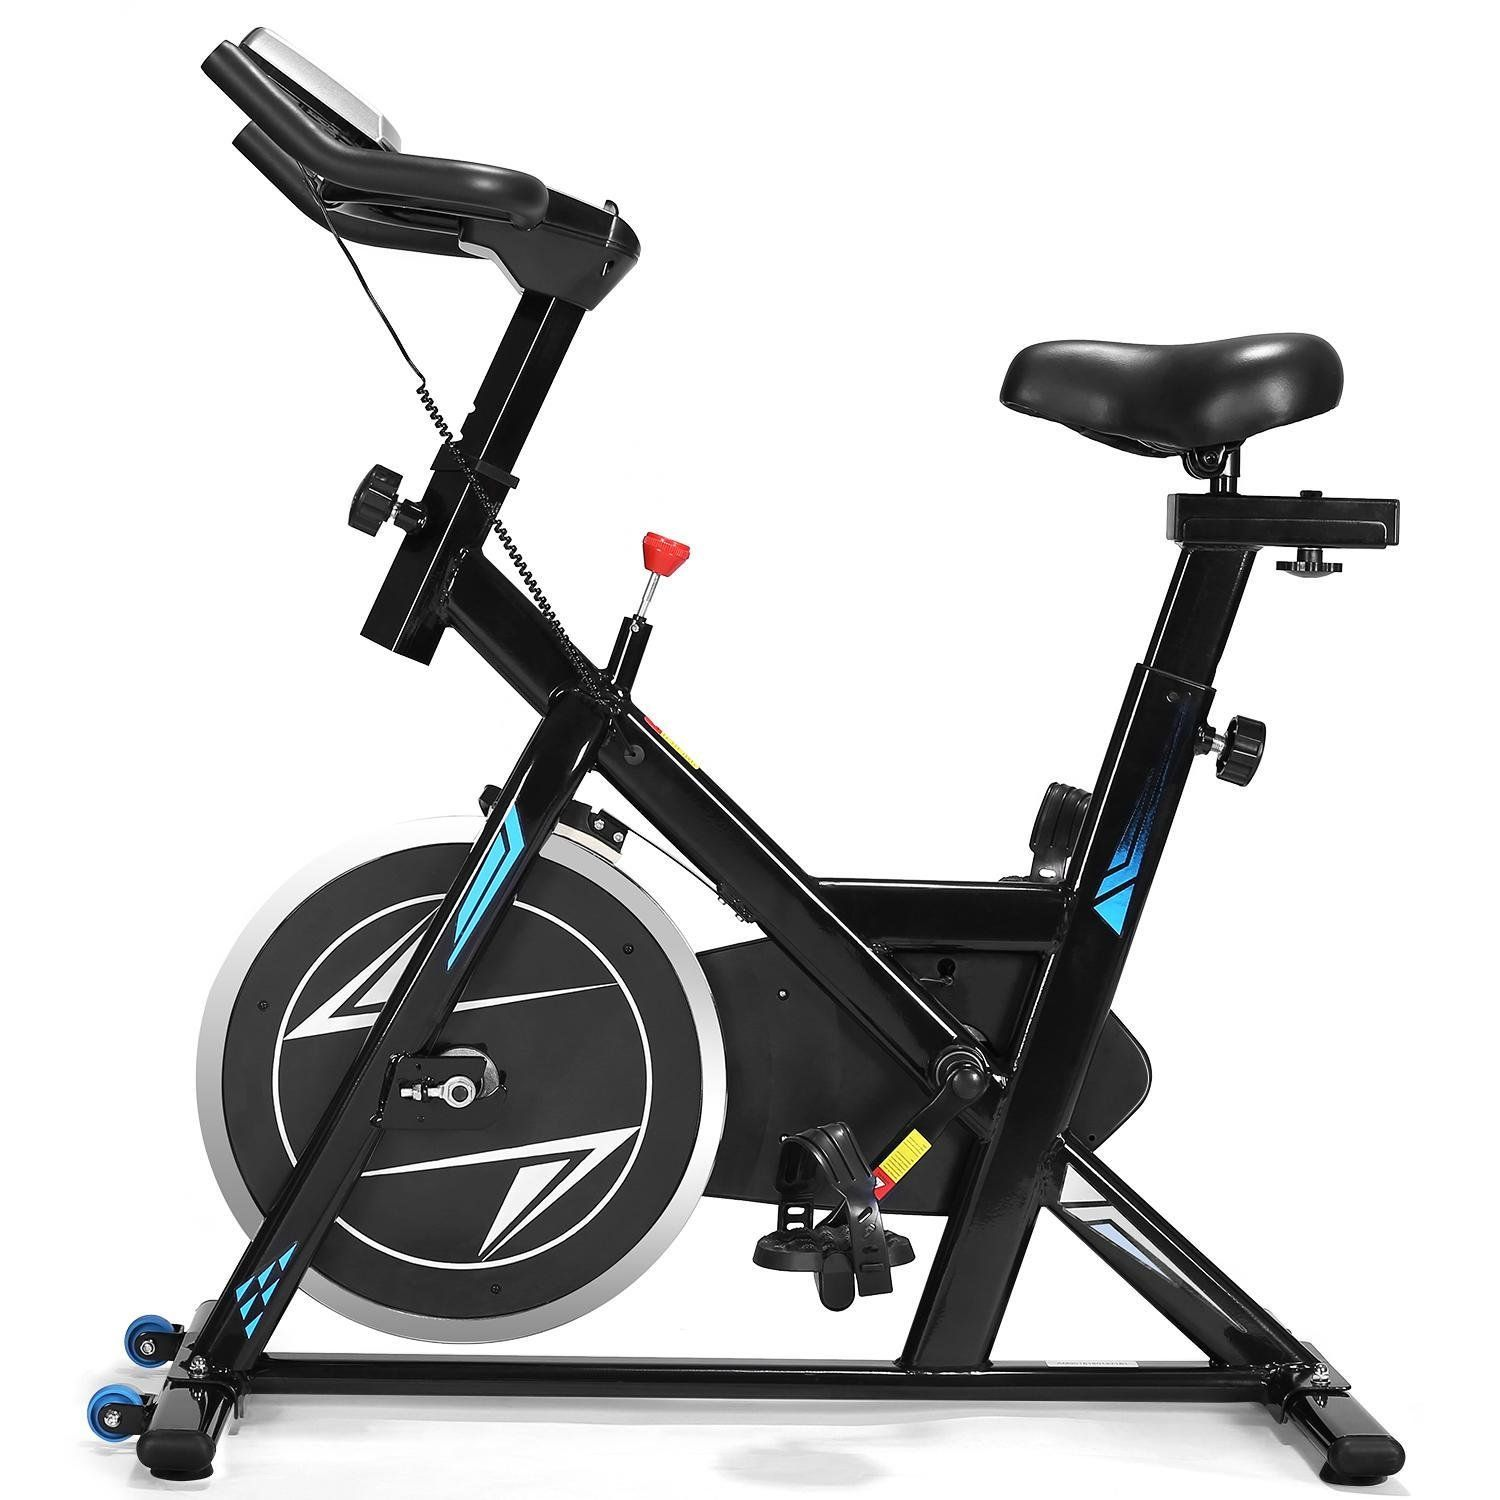 Rapesee Indoor Stationary Bike Exercise Cycle Professional Spin